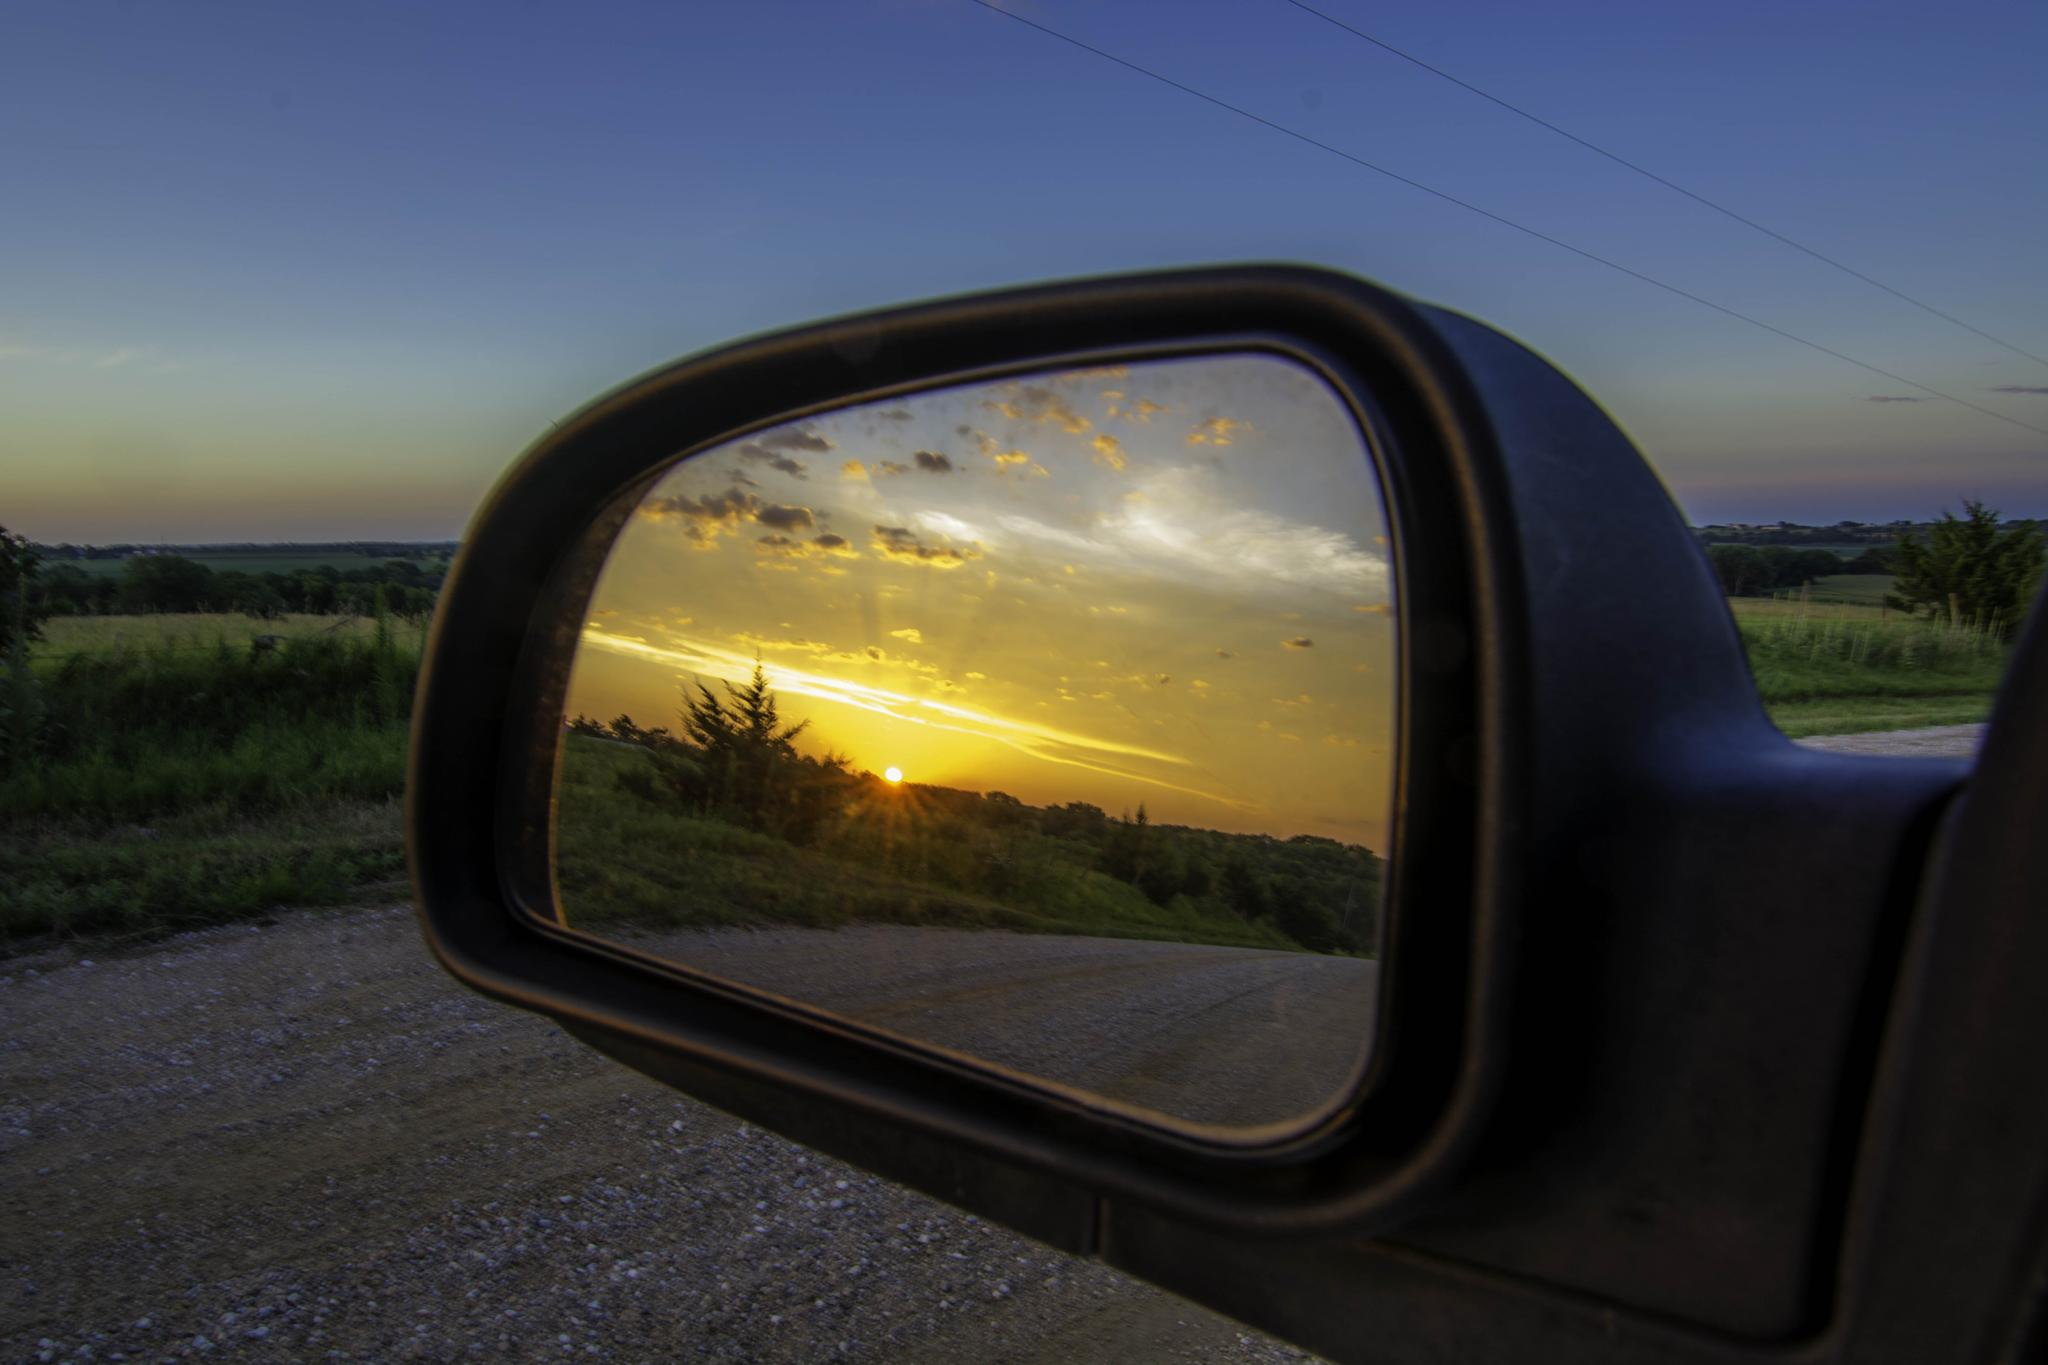 Sunset in the rearview mirror by Jay Douglass